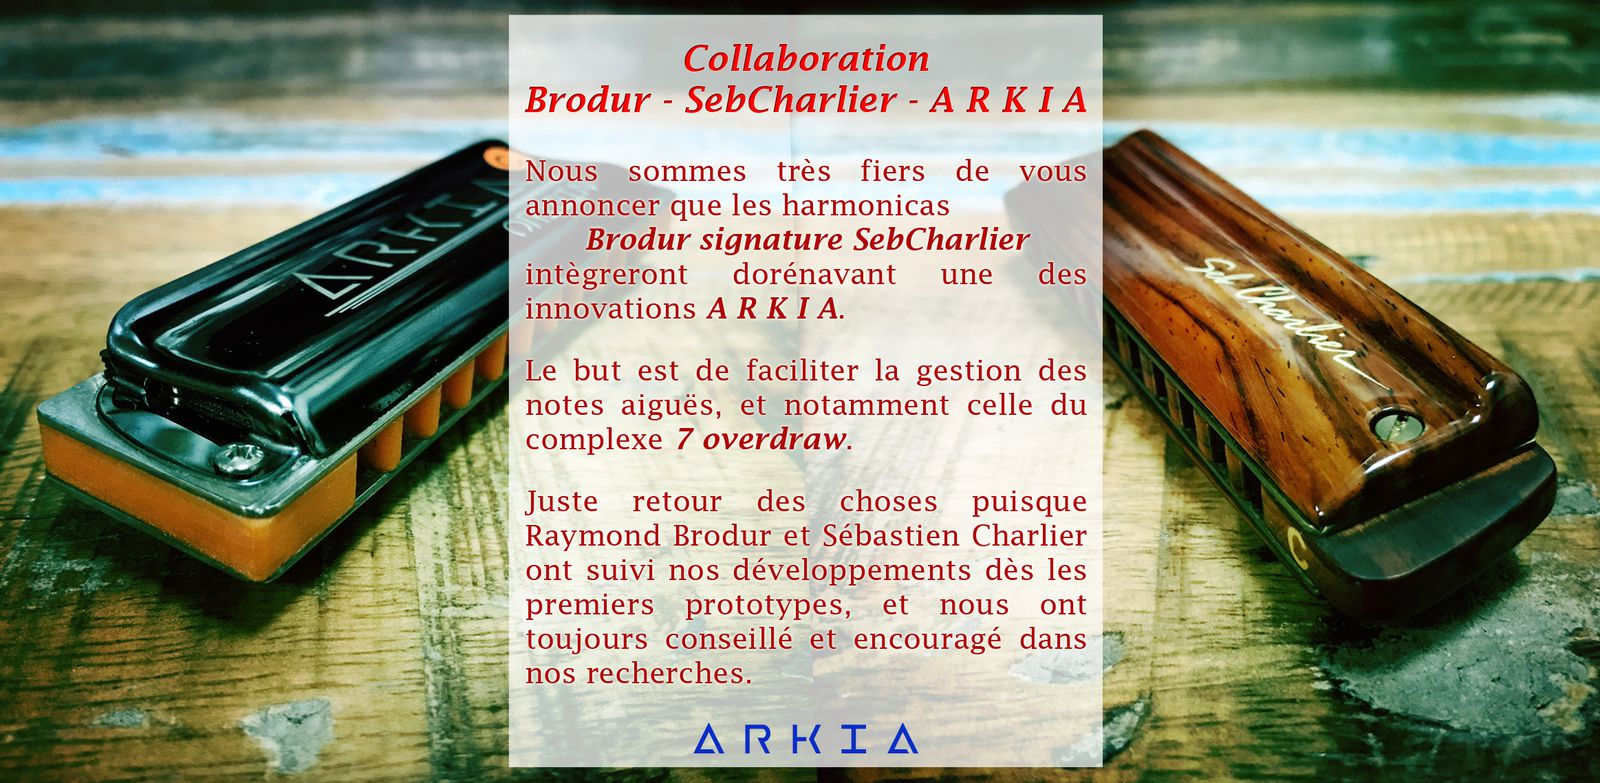 Collaboration Brodur-SebCharlier-ARKIA